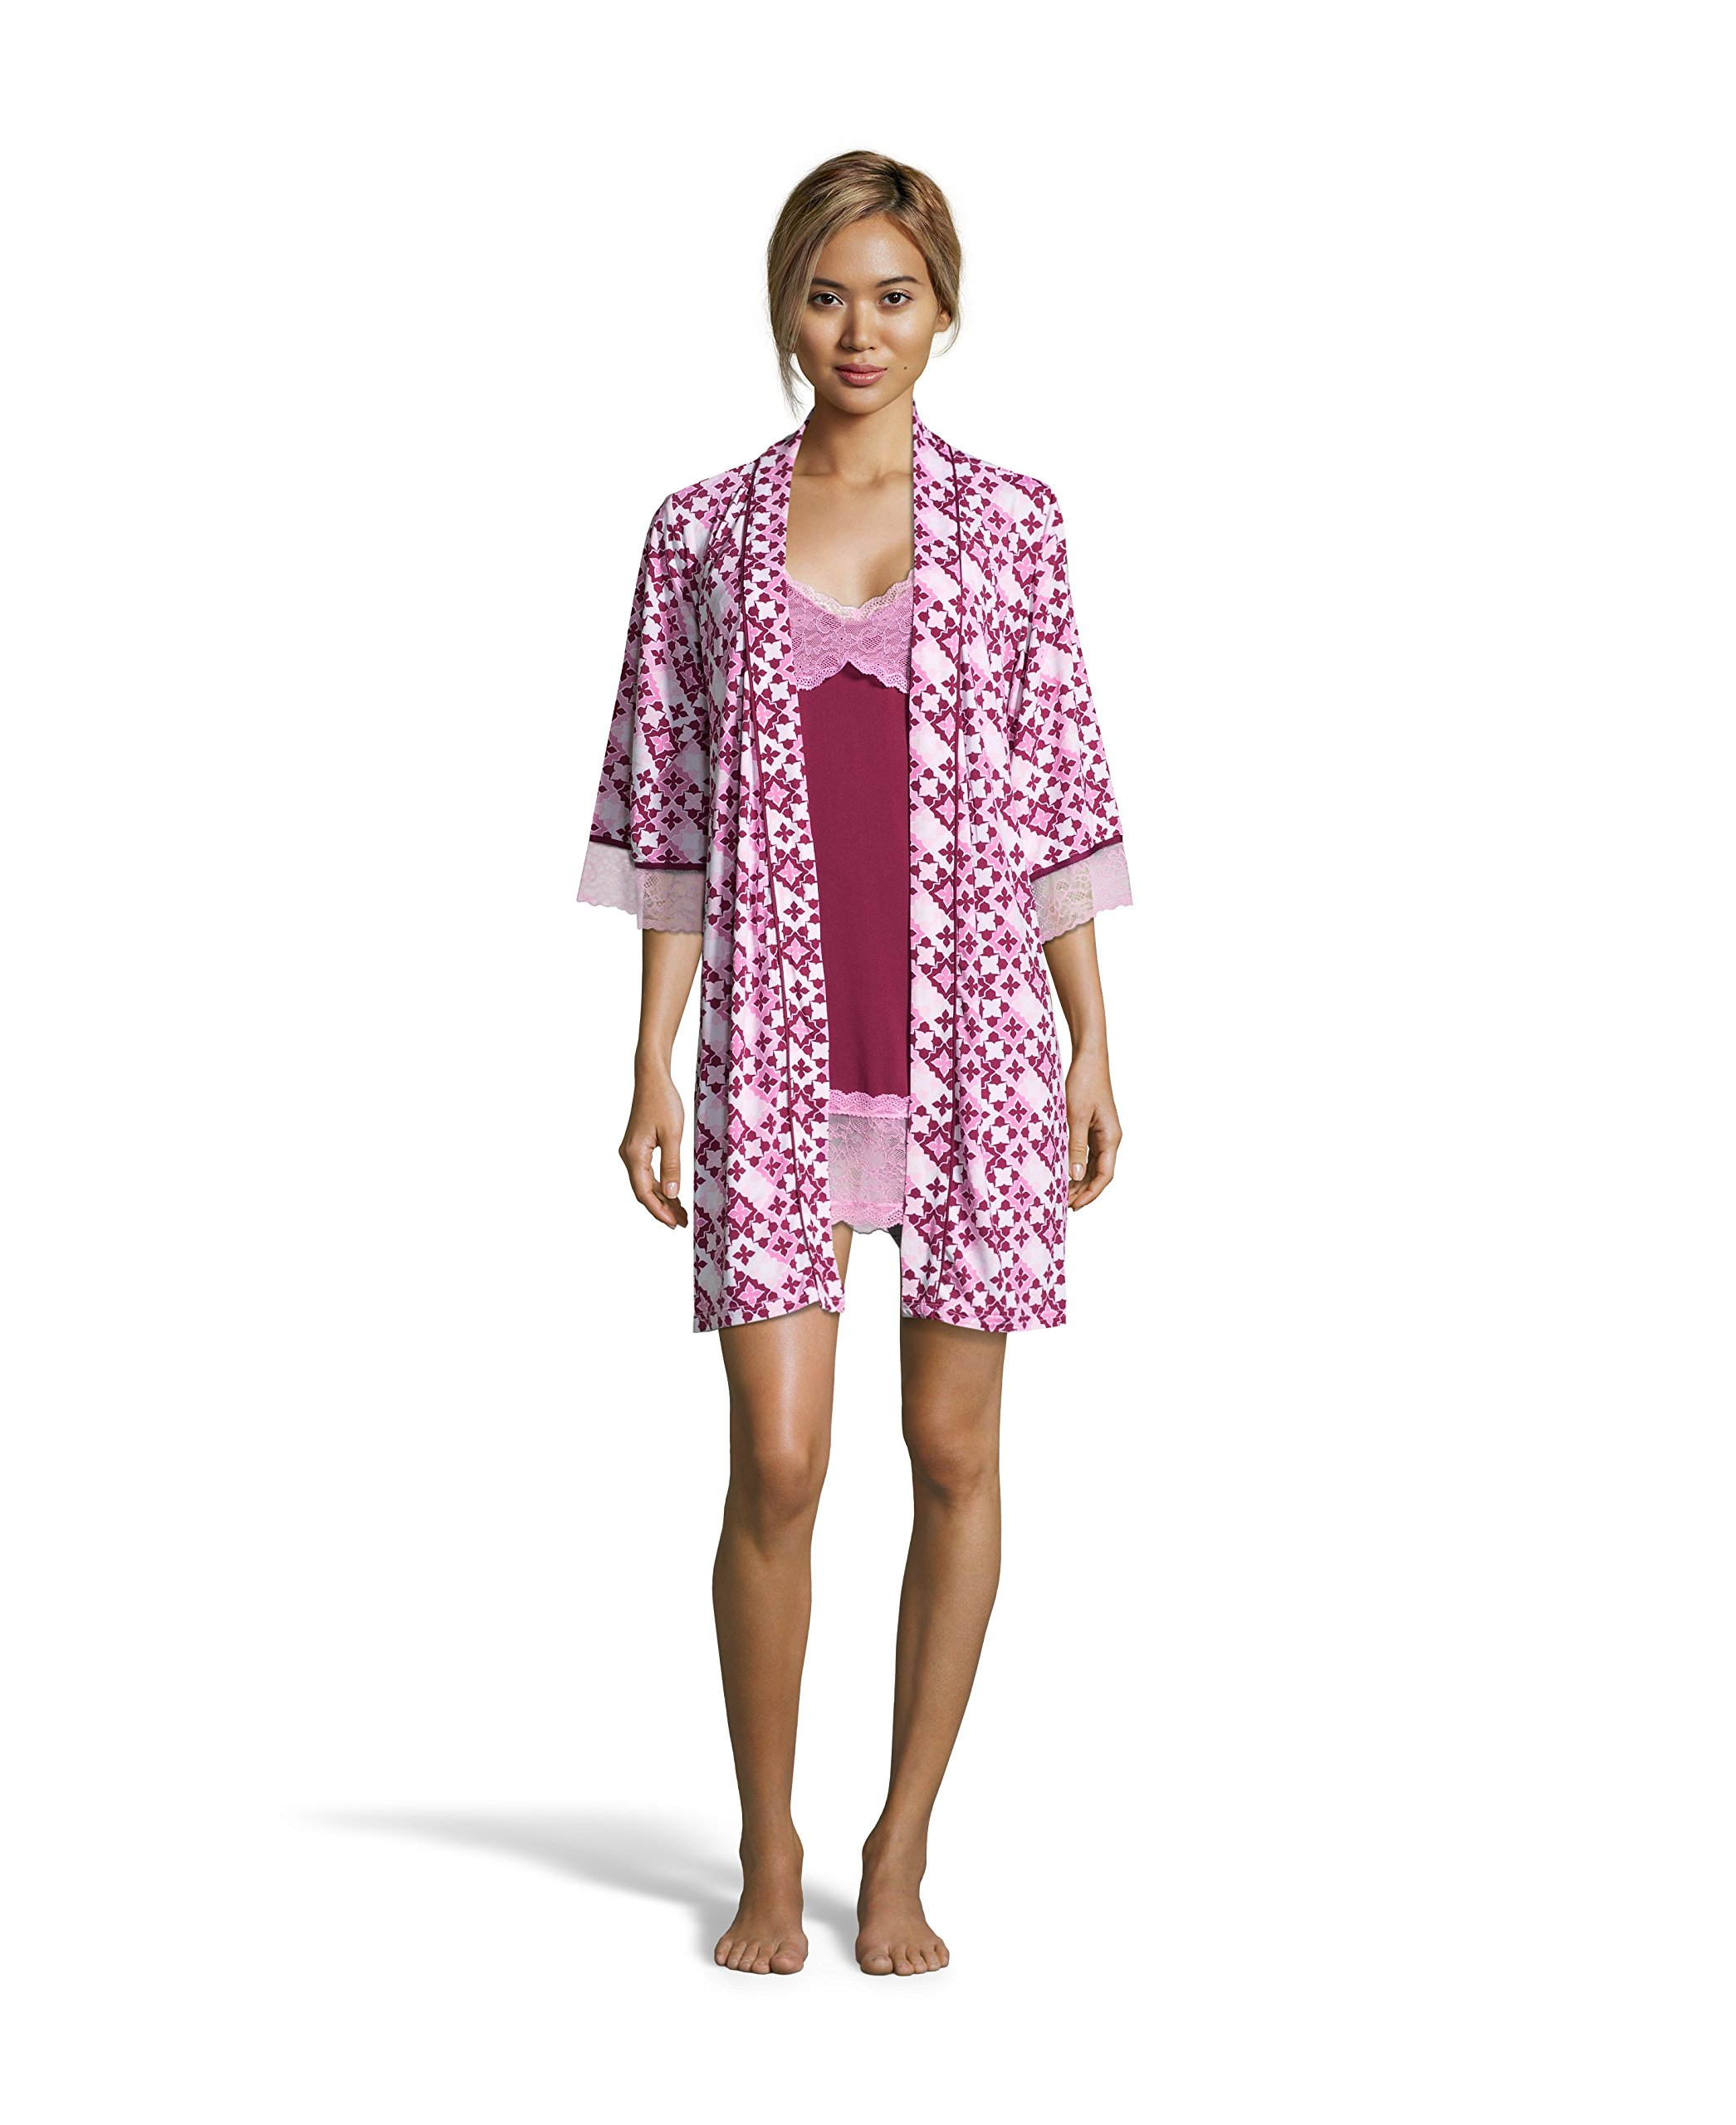 Nanette Nanette Lepore Womens Chemise Nightgown and Floral Belted Robe Pajama Set Raspberry X-Large by Nanette Lepore (Image #1)